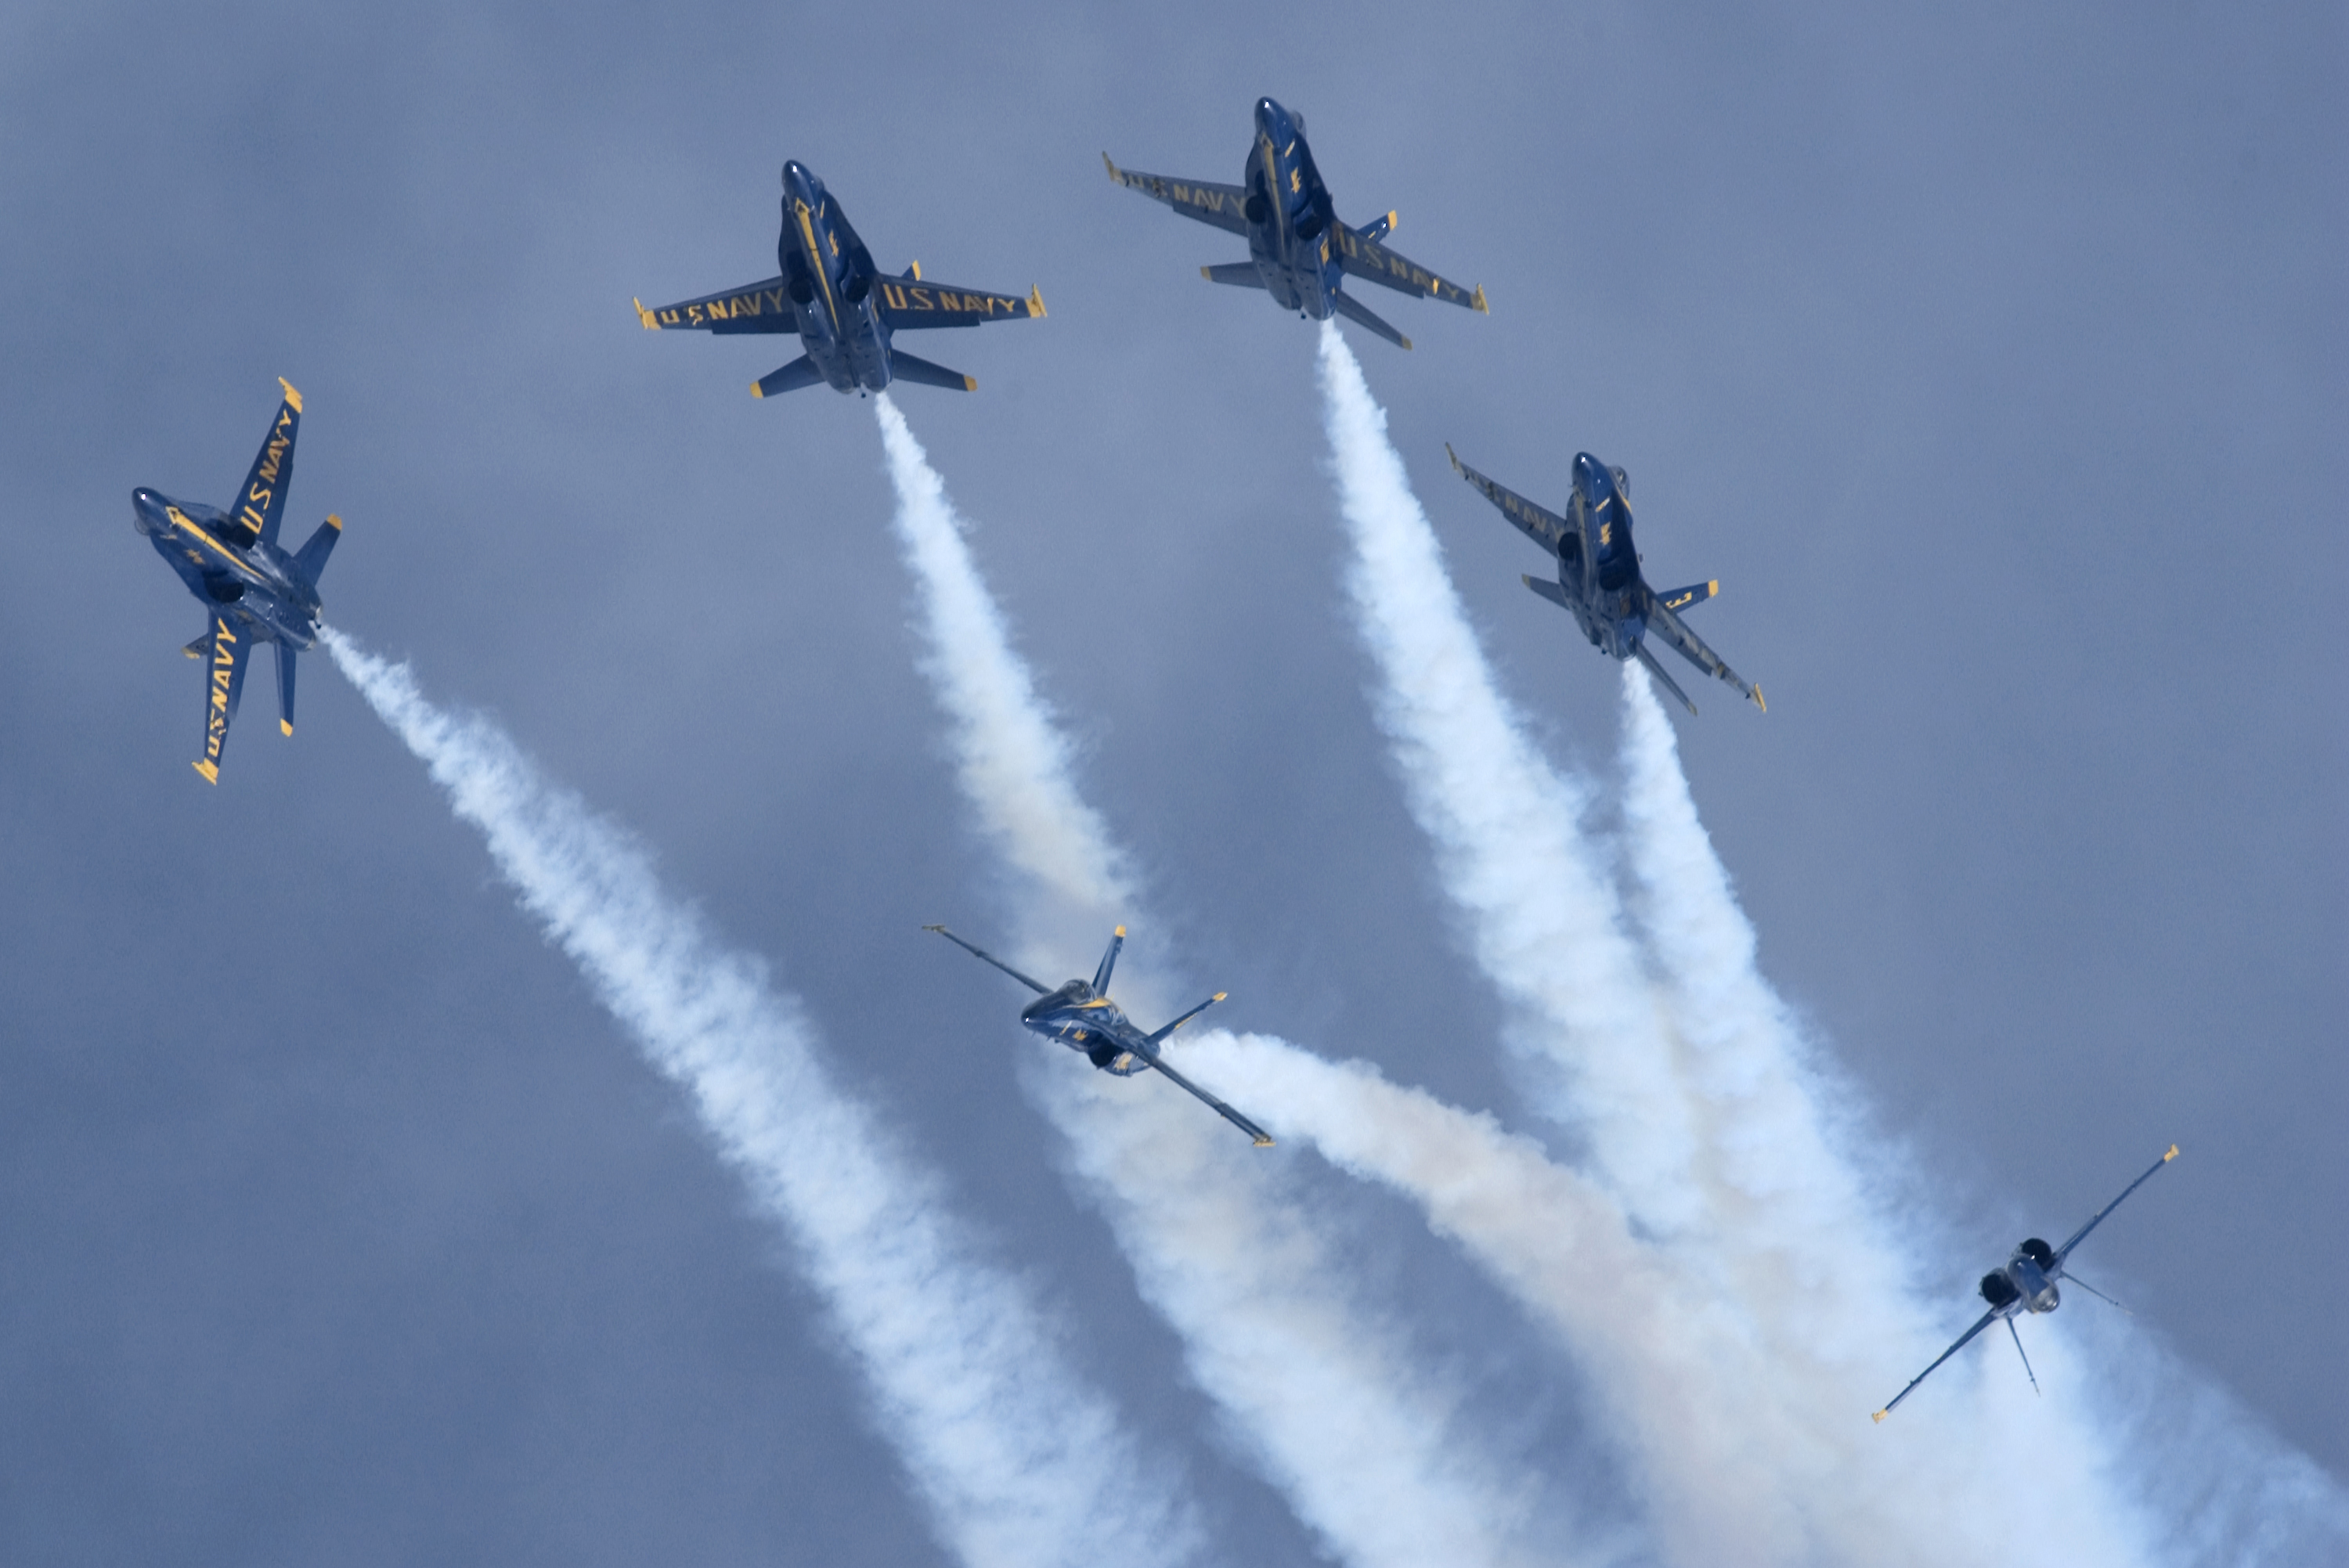 military Navy blue angels HD Wallpaper